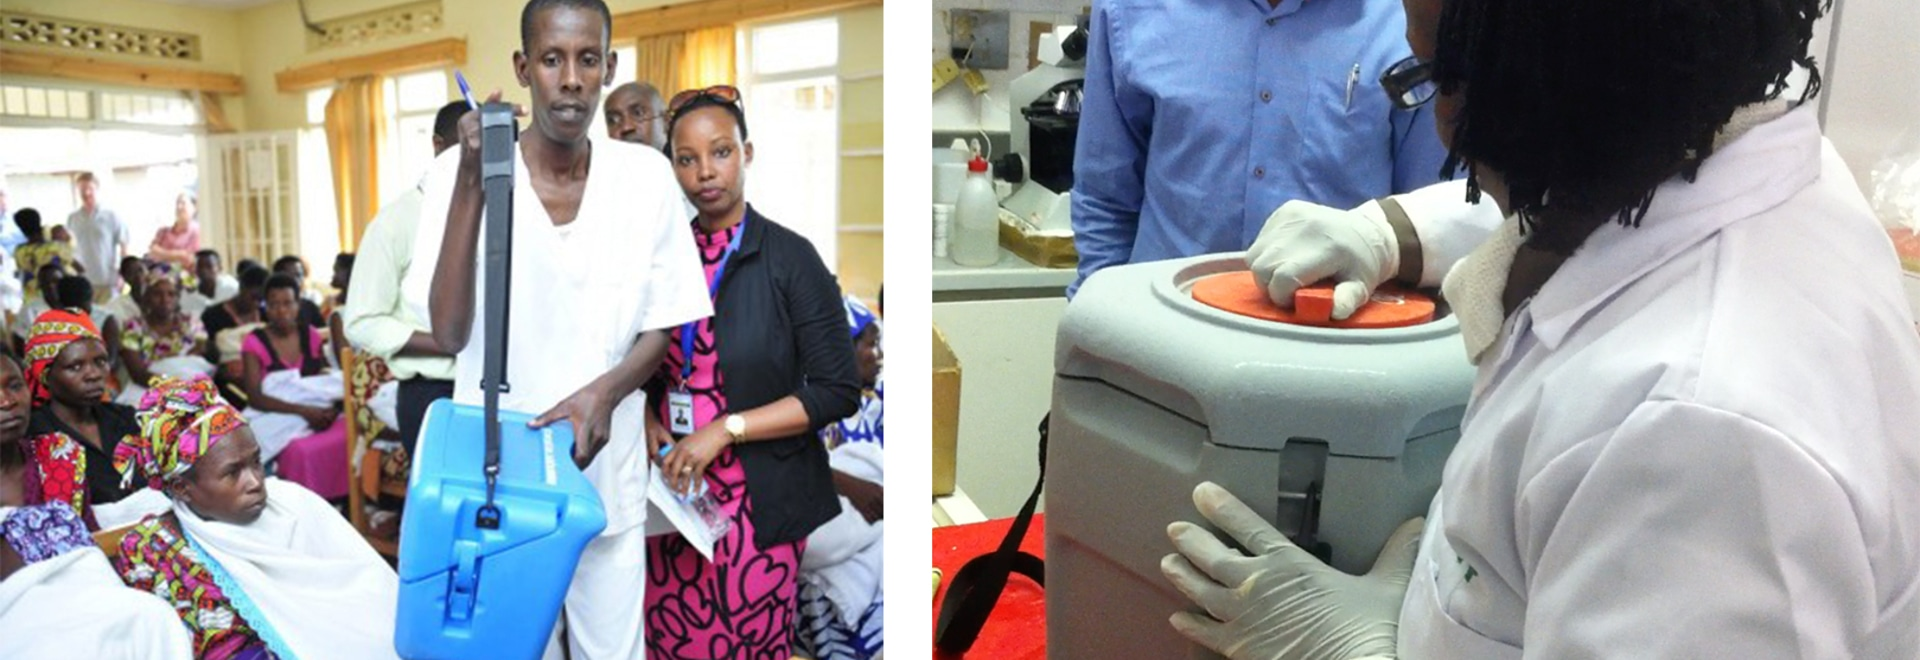 B Medical Systems teams up with SEEDR to launch next generation of intelligent freeze-free vaccine carriers and transport boxes